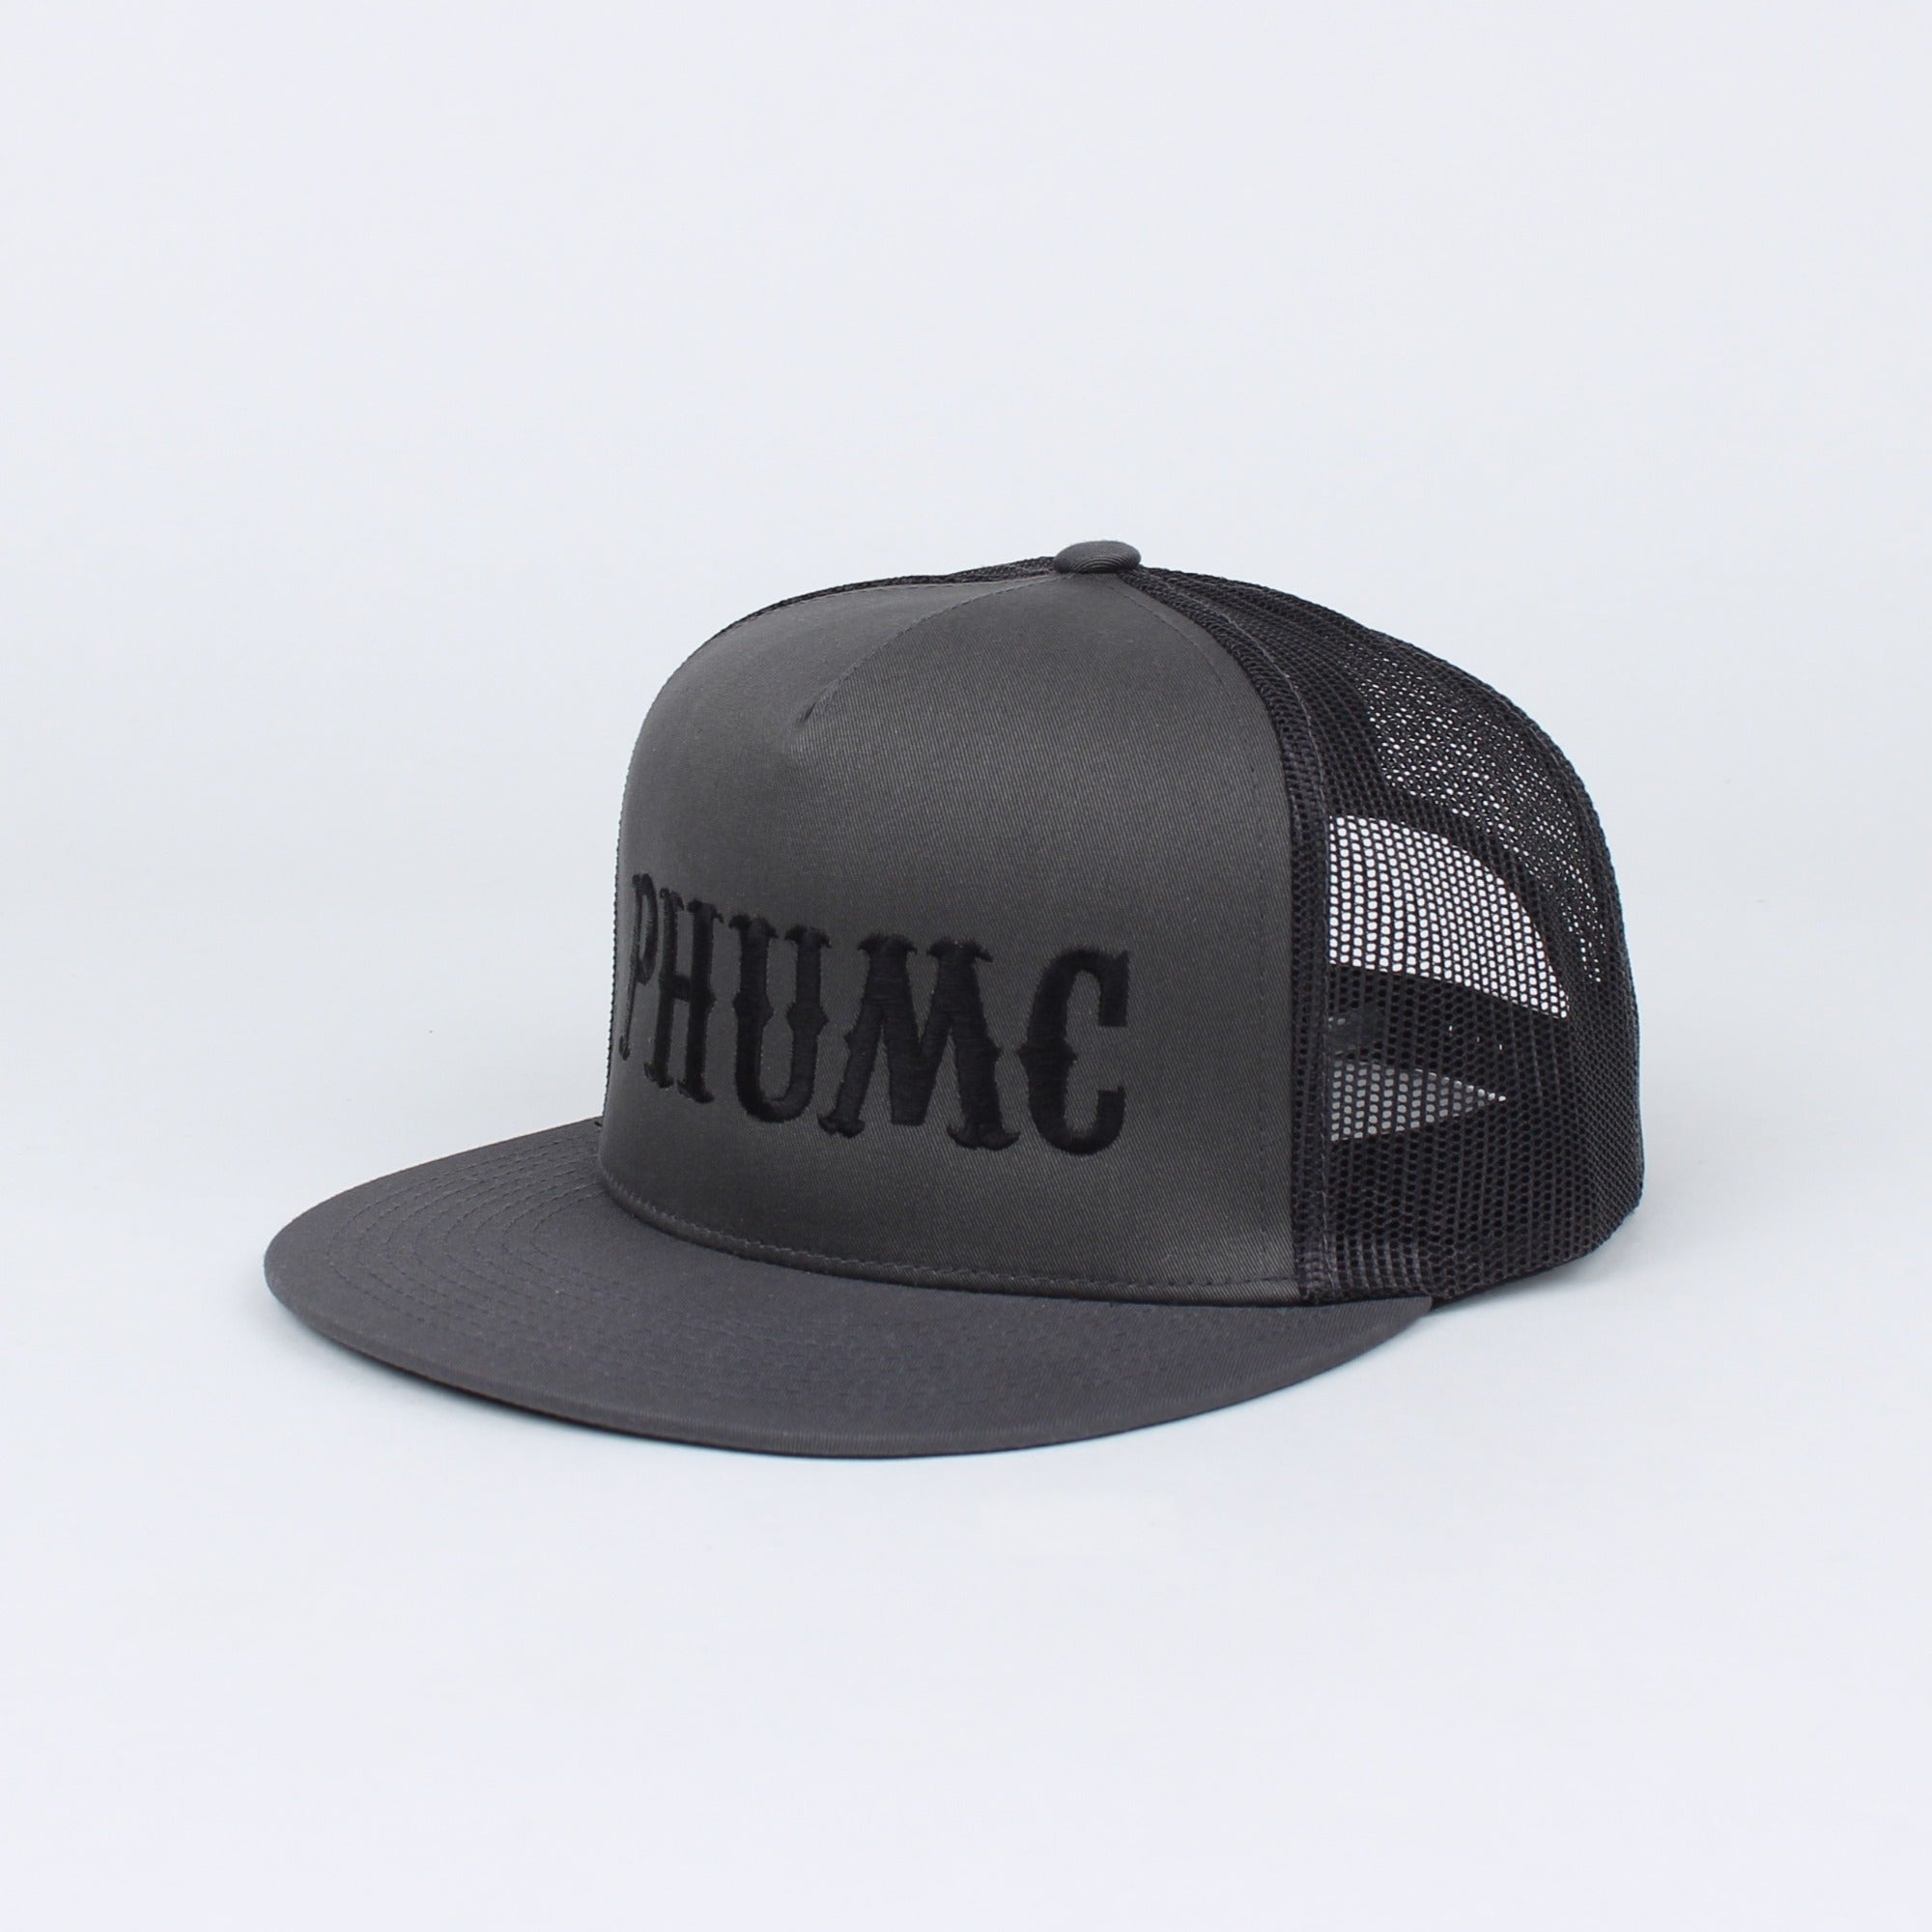 PHUMC CTR Linear Flat Bill Snapback (Grey) - Grey/Black - Hats - Pipe Hitters Union